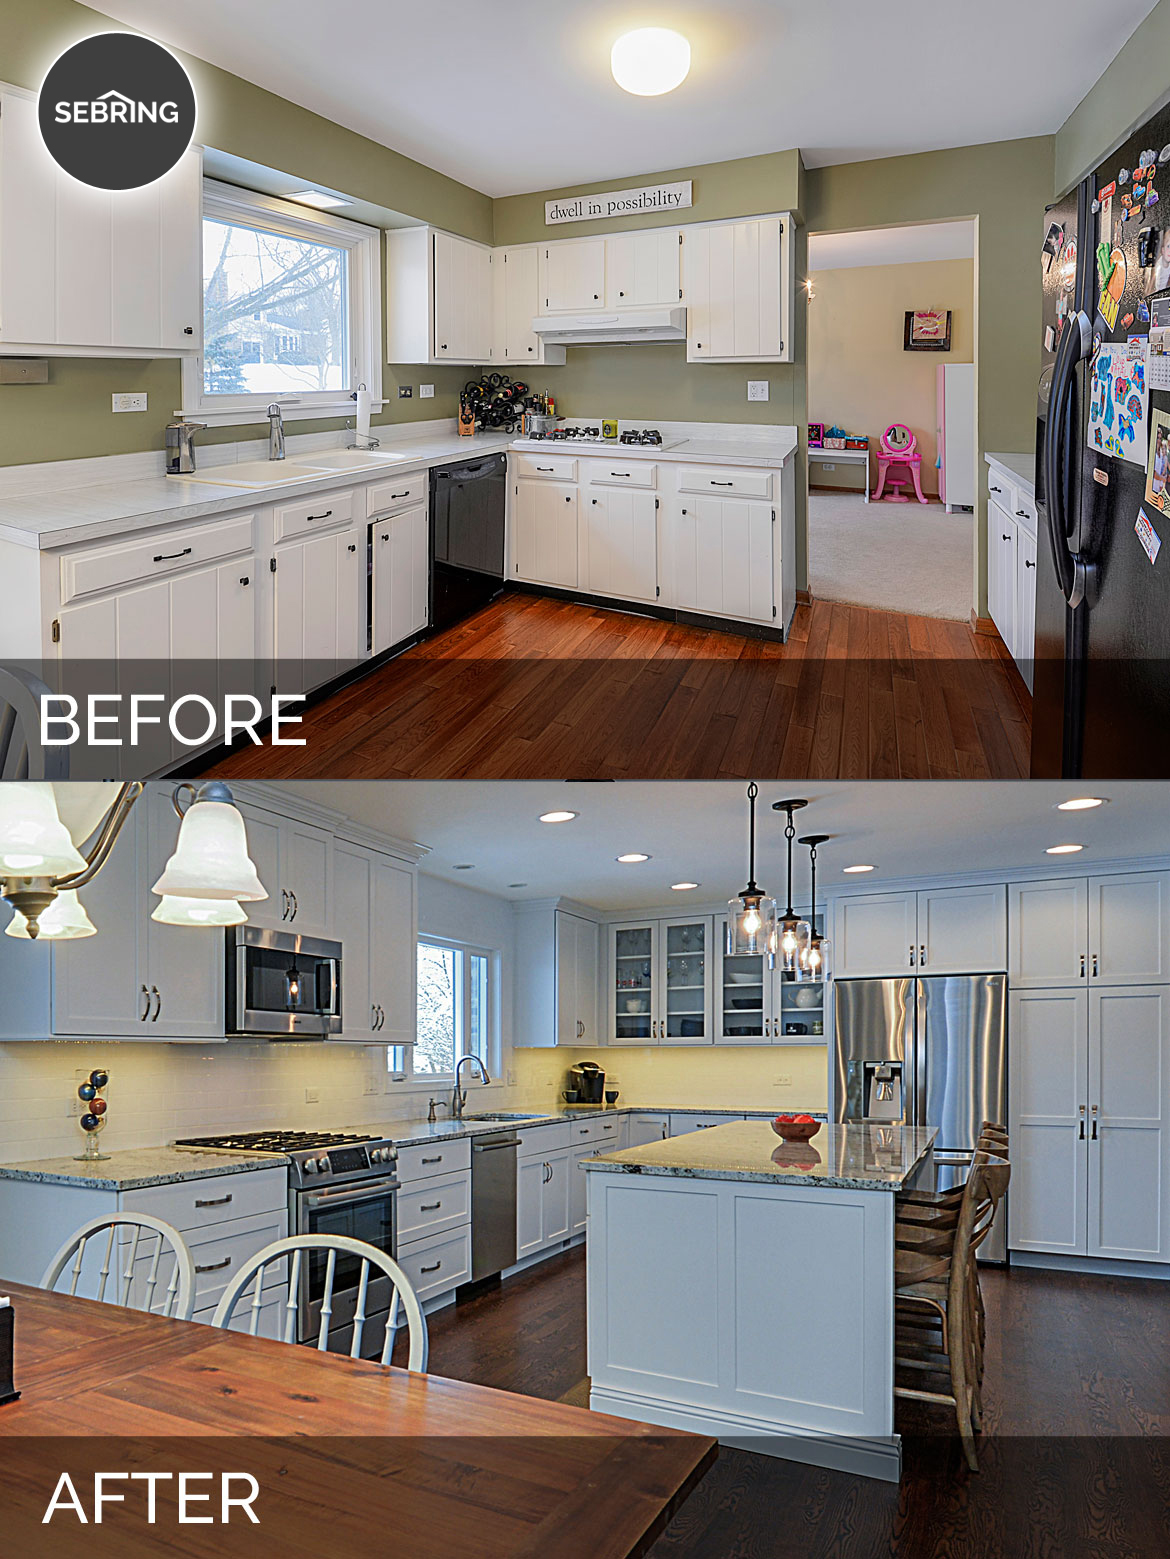 Ryan Amp Missy S Kitchen Before Amp After Pictures Home